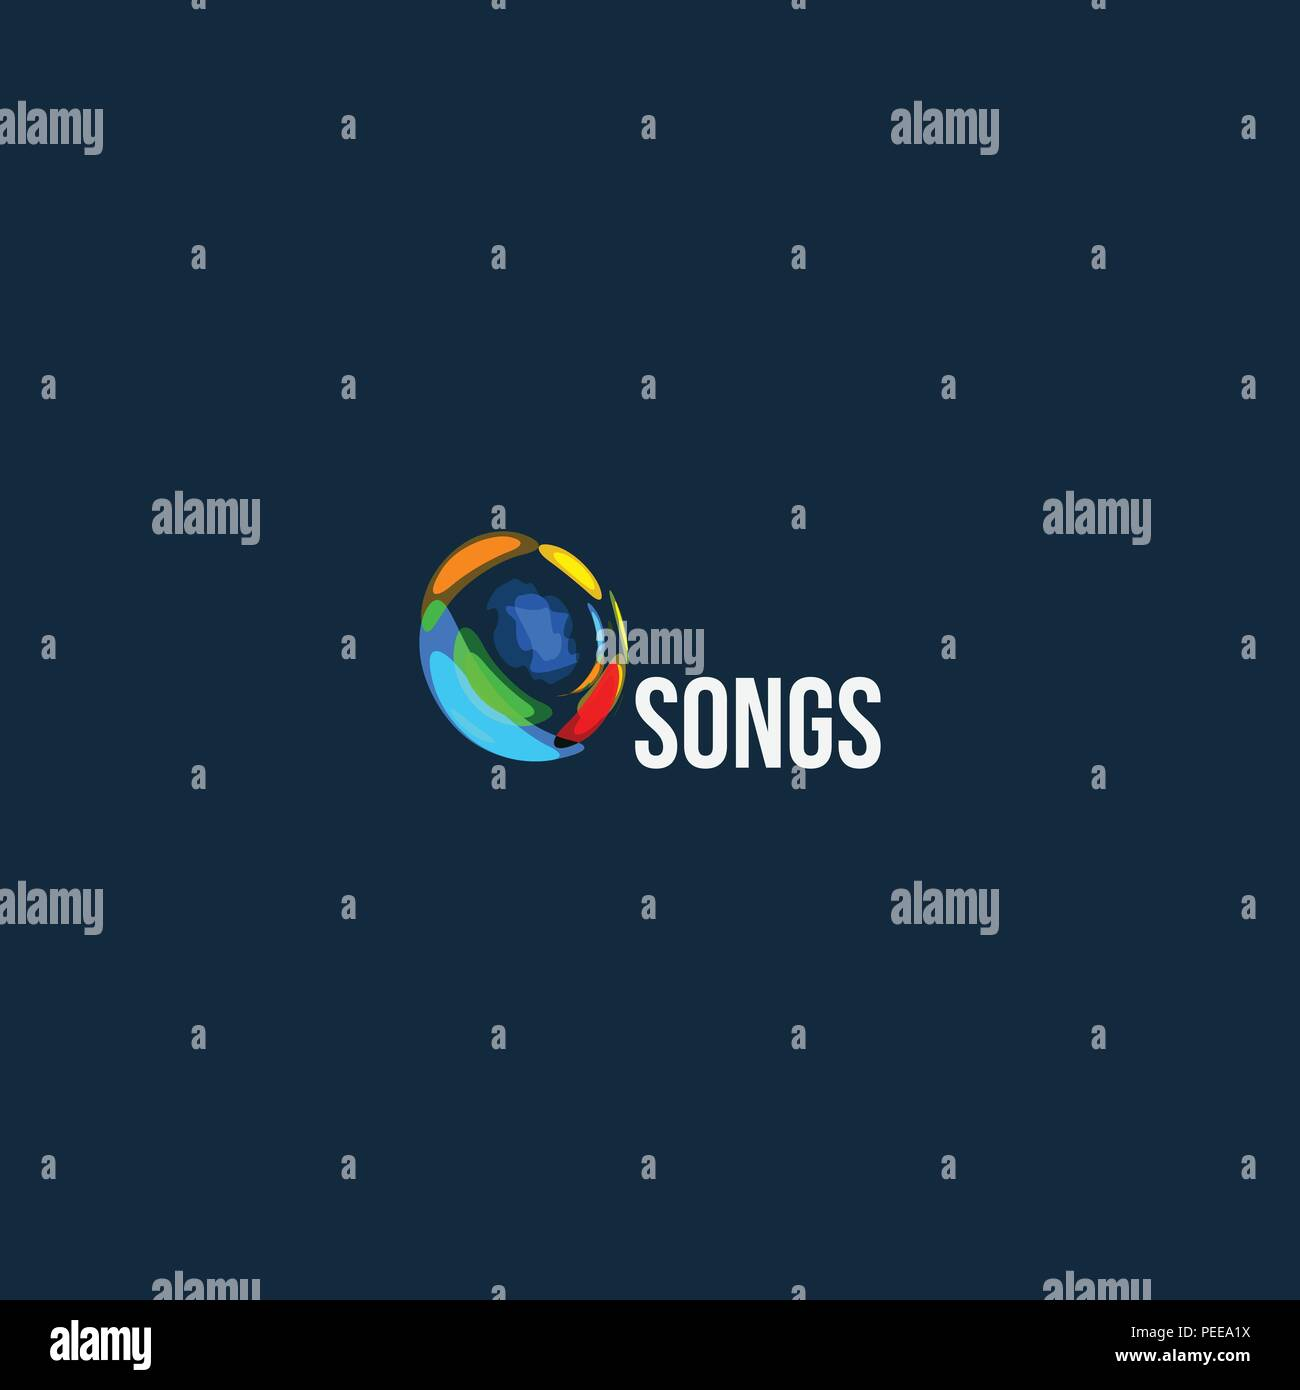 Songs abstract vector logo  Audio wave design icon  Music play